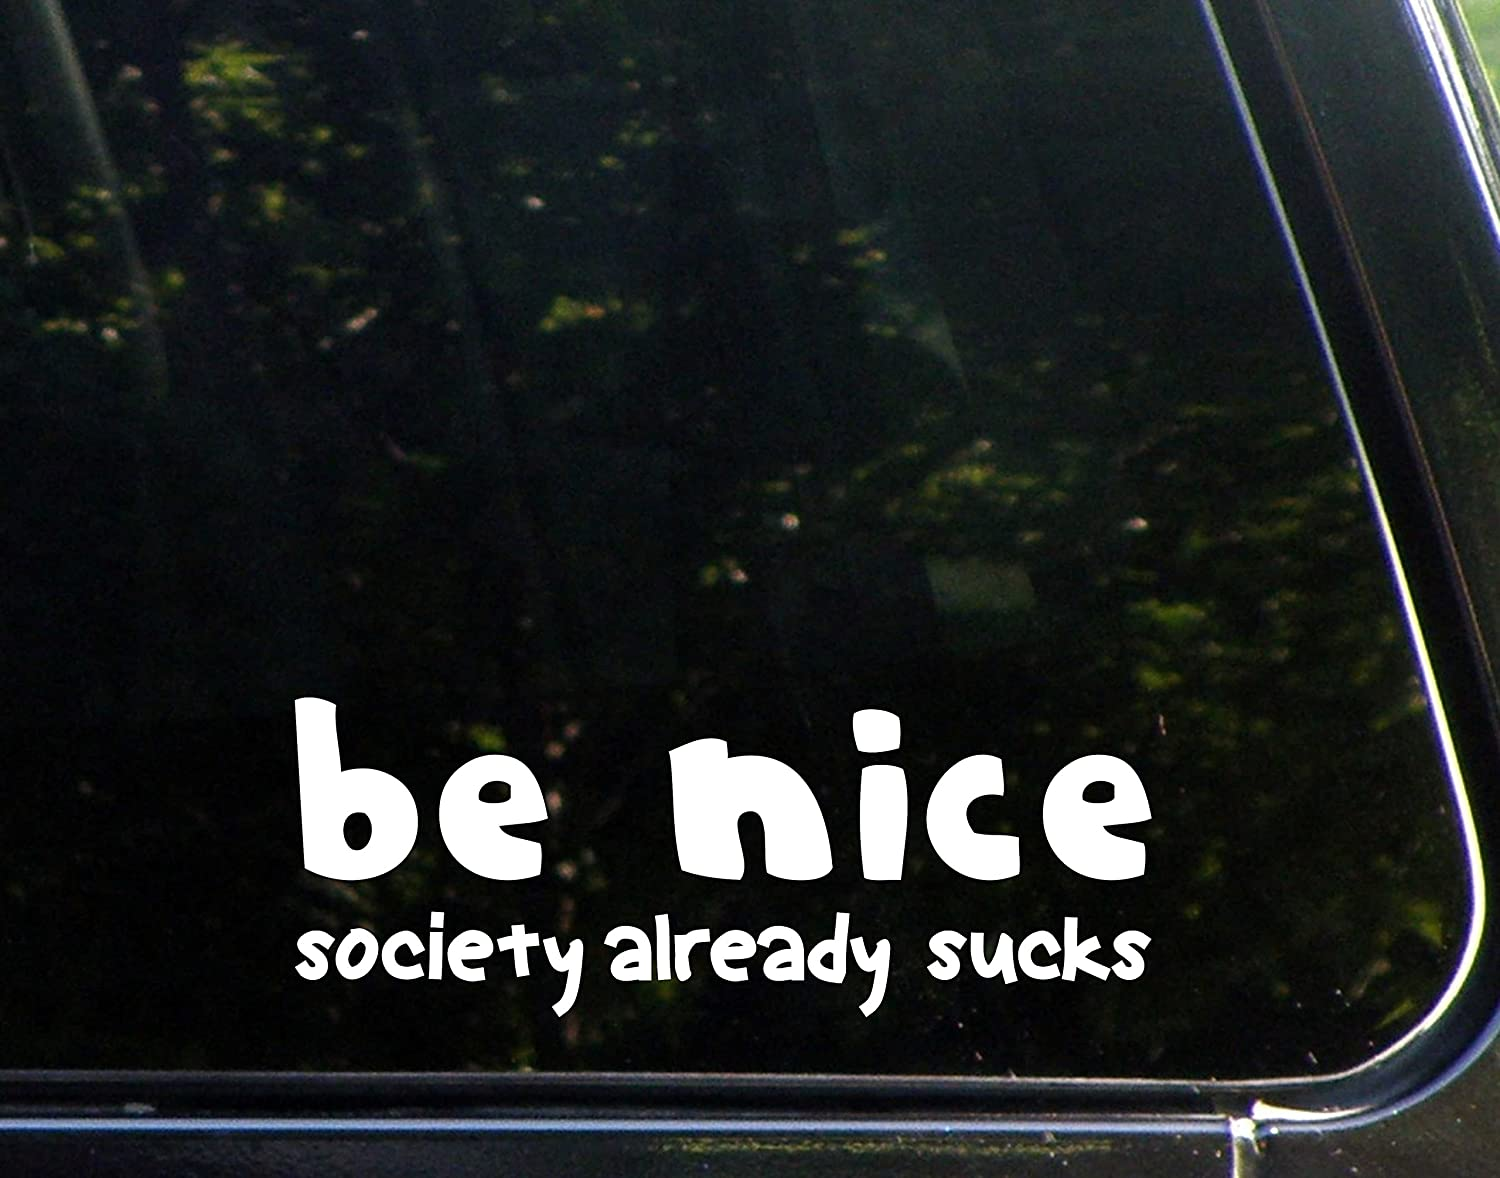 "Be Nice Society Already Sucks - 8"" x 3"" - Vinyl Die Cut Decal/Bumper Sticker for Windows, Cars, Trucks, Laptops, Etc."